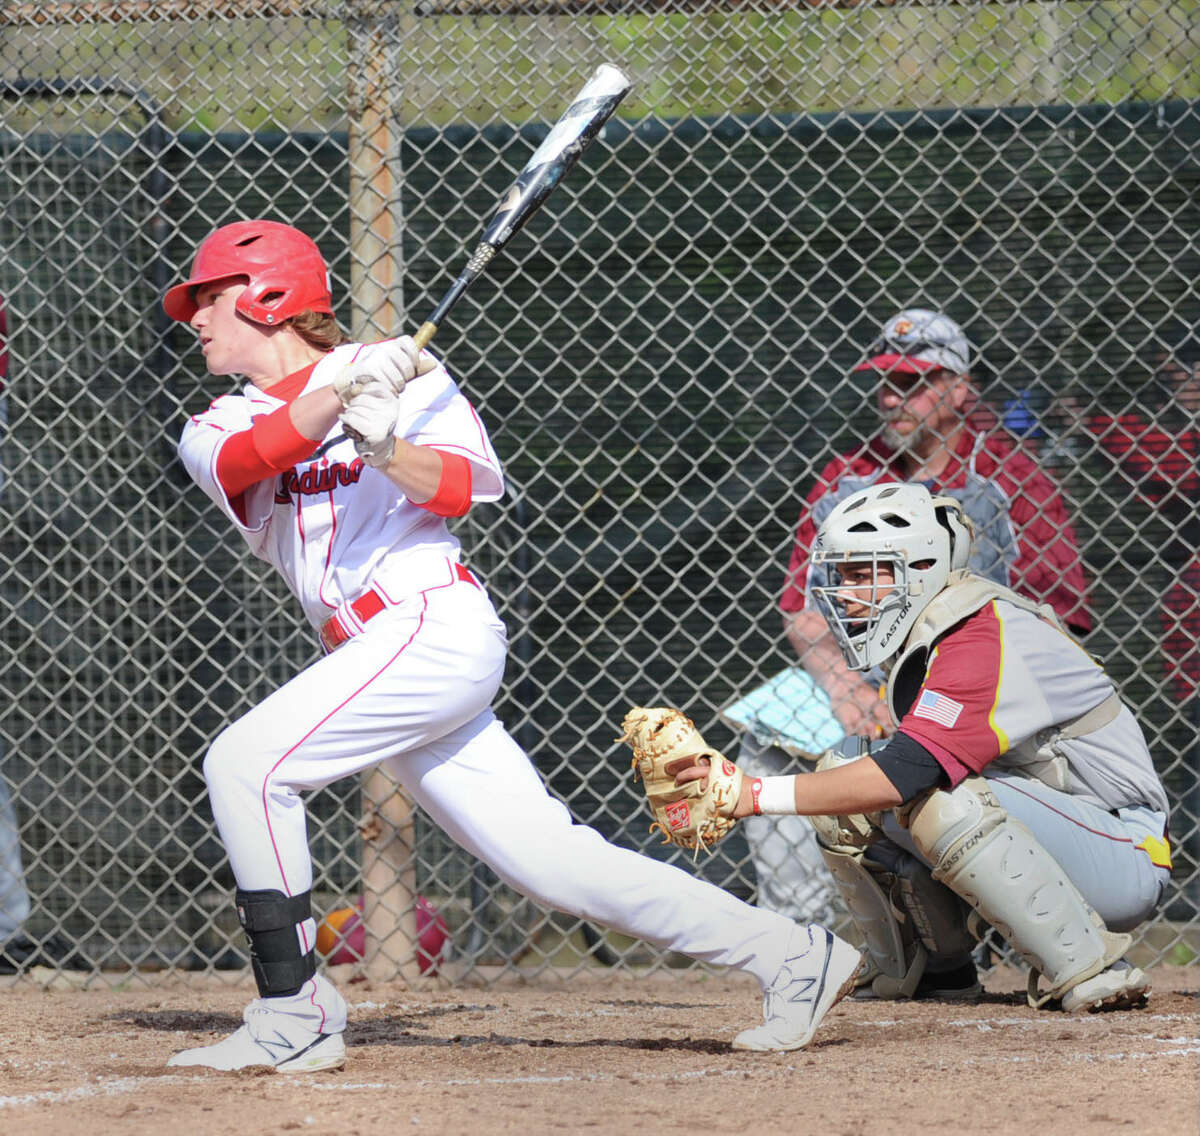 Kyle Dunster of Greenwich hits during the high school baseball game between Greenwich High School and St. Joseph High School at Greenwich, Friday, May 2, 2014. Greenwich won 5-4 on a game winning double by Dunster in the bottom of the 7th inning.